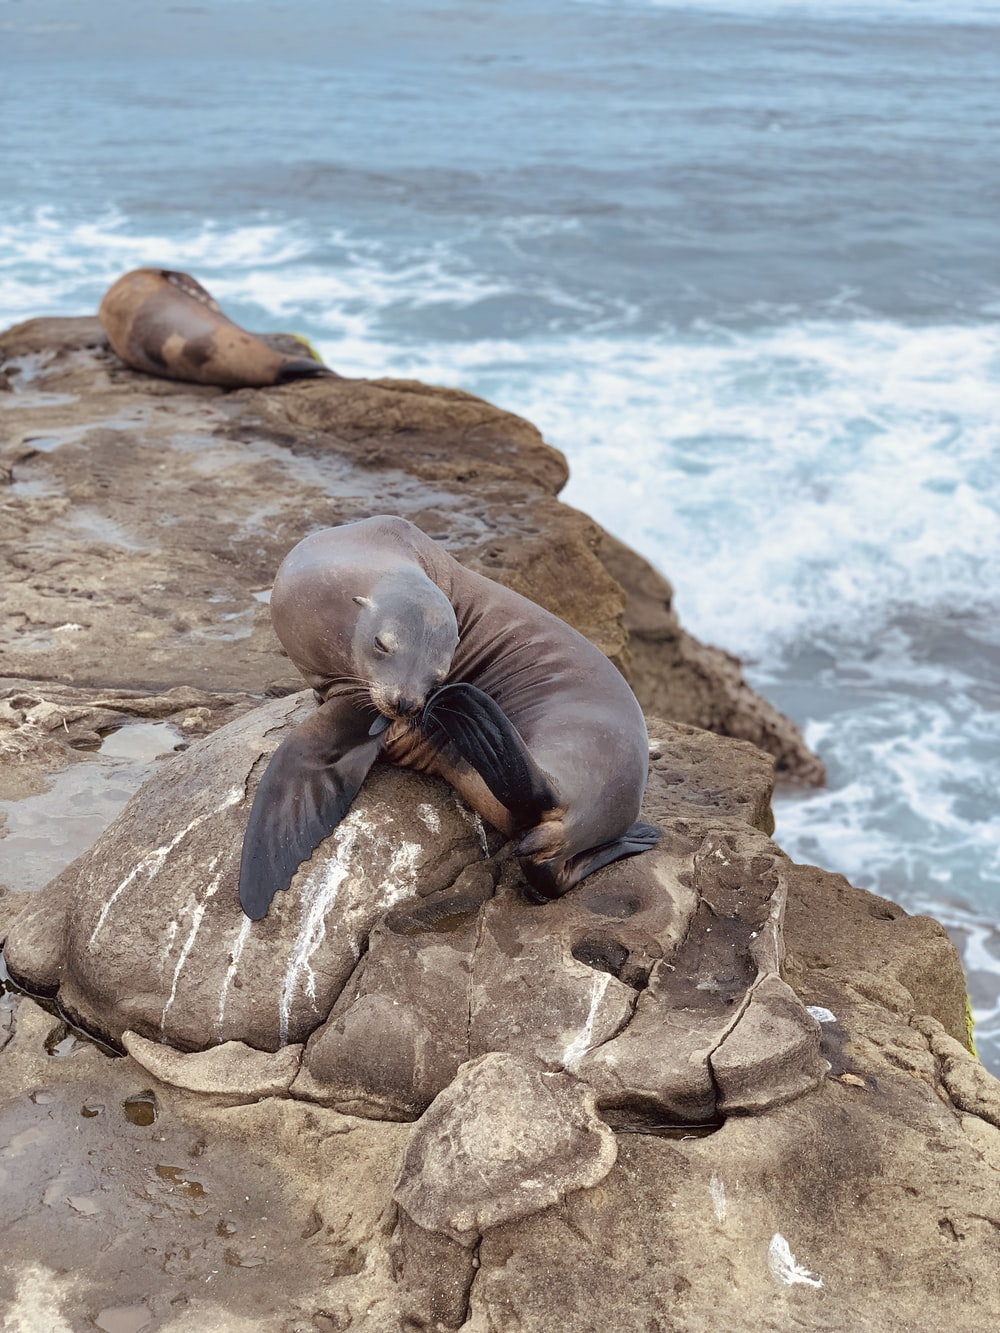 sea lion on rock formation during daytime